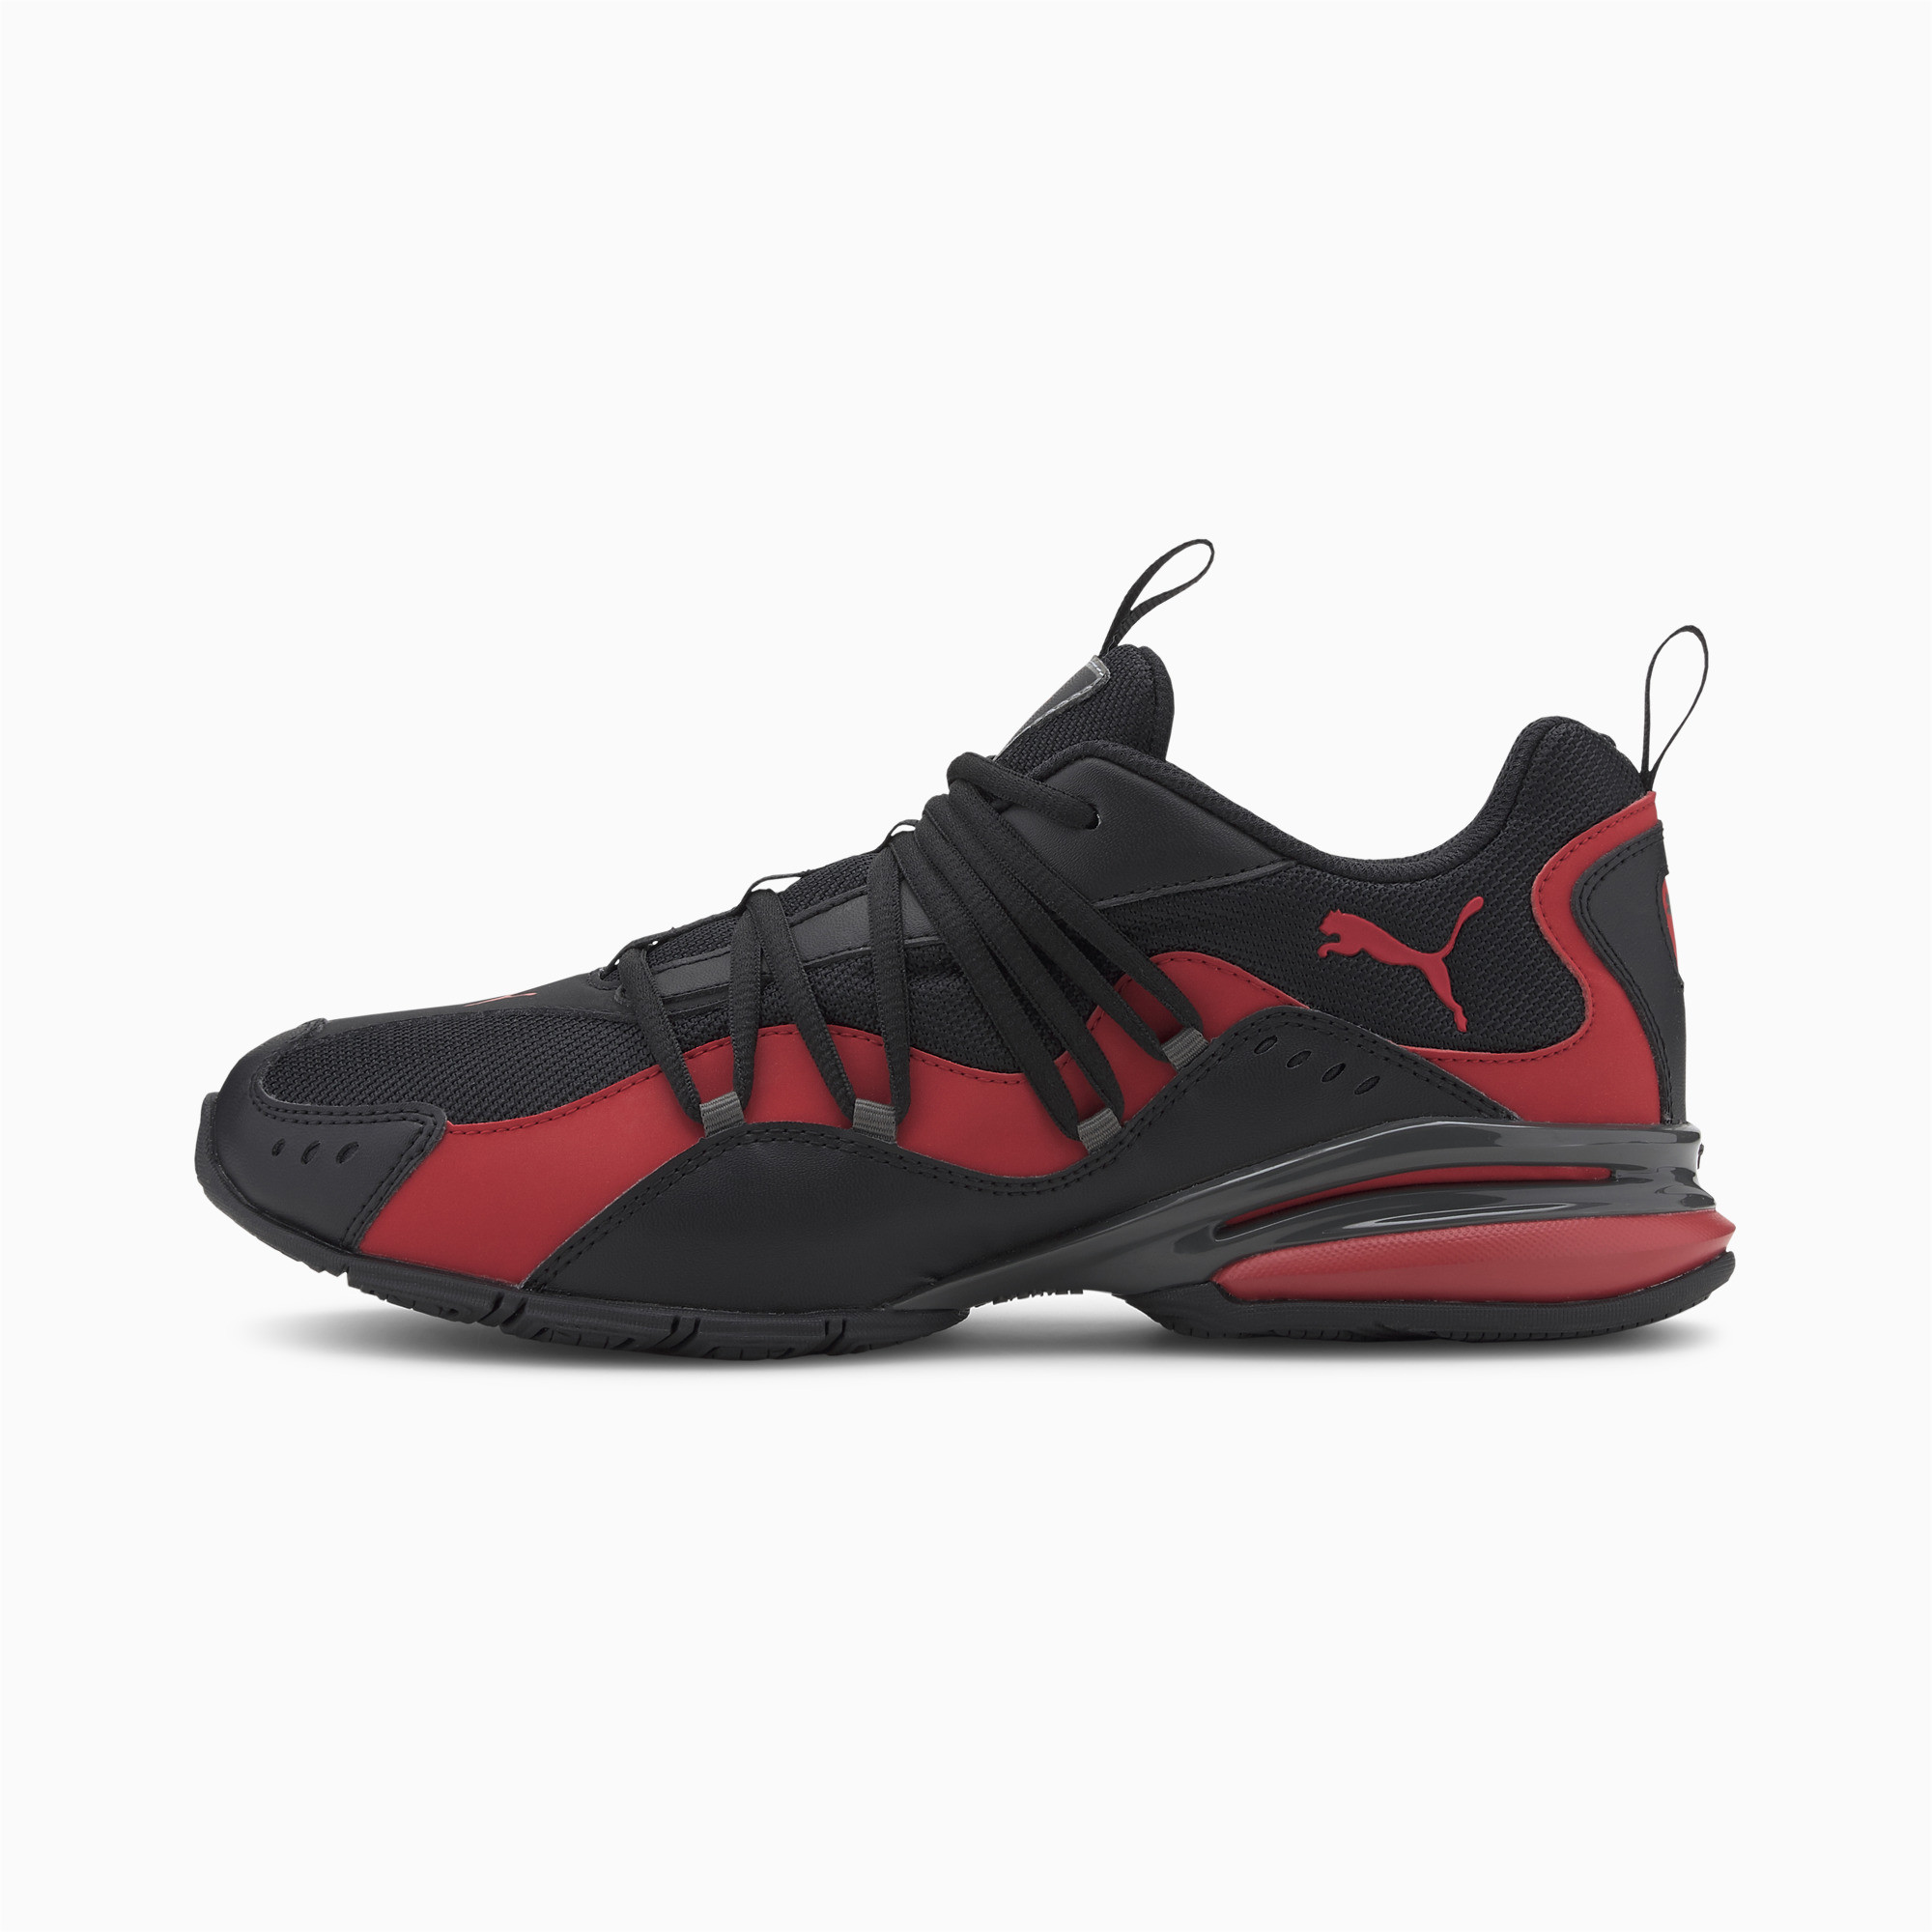 PUMA-Men-039-s-Silverion-Running-Shoes thumbnail 17